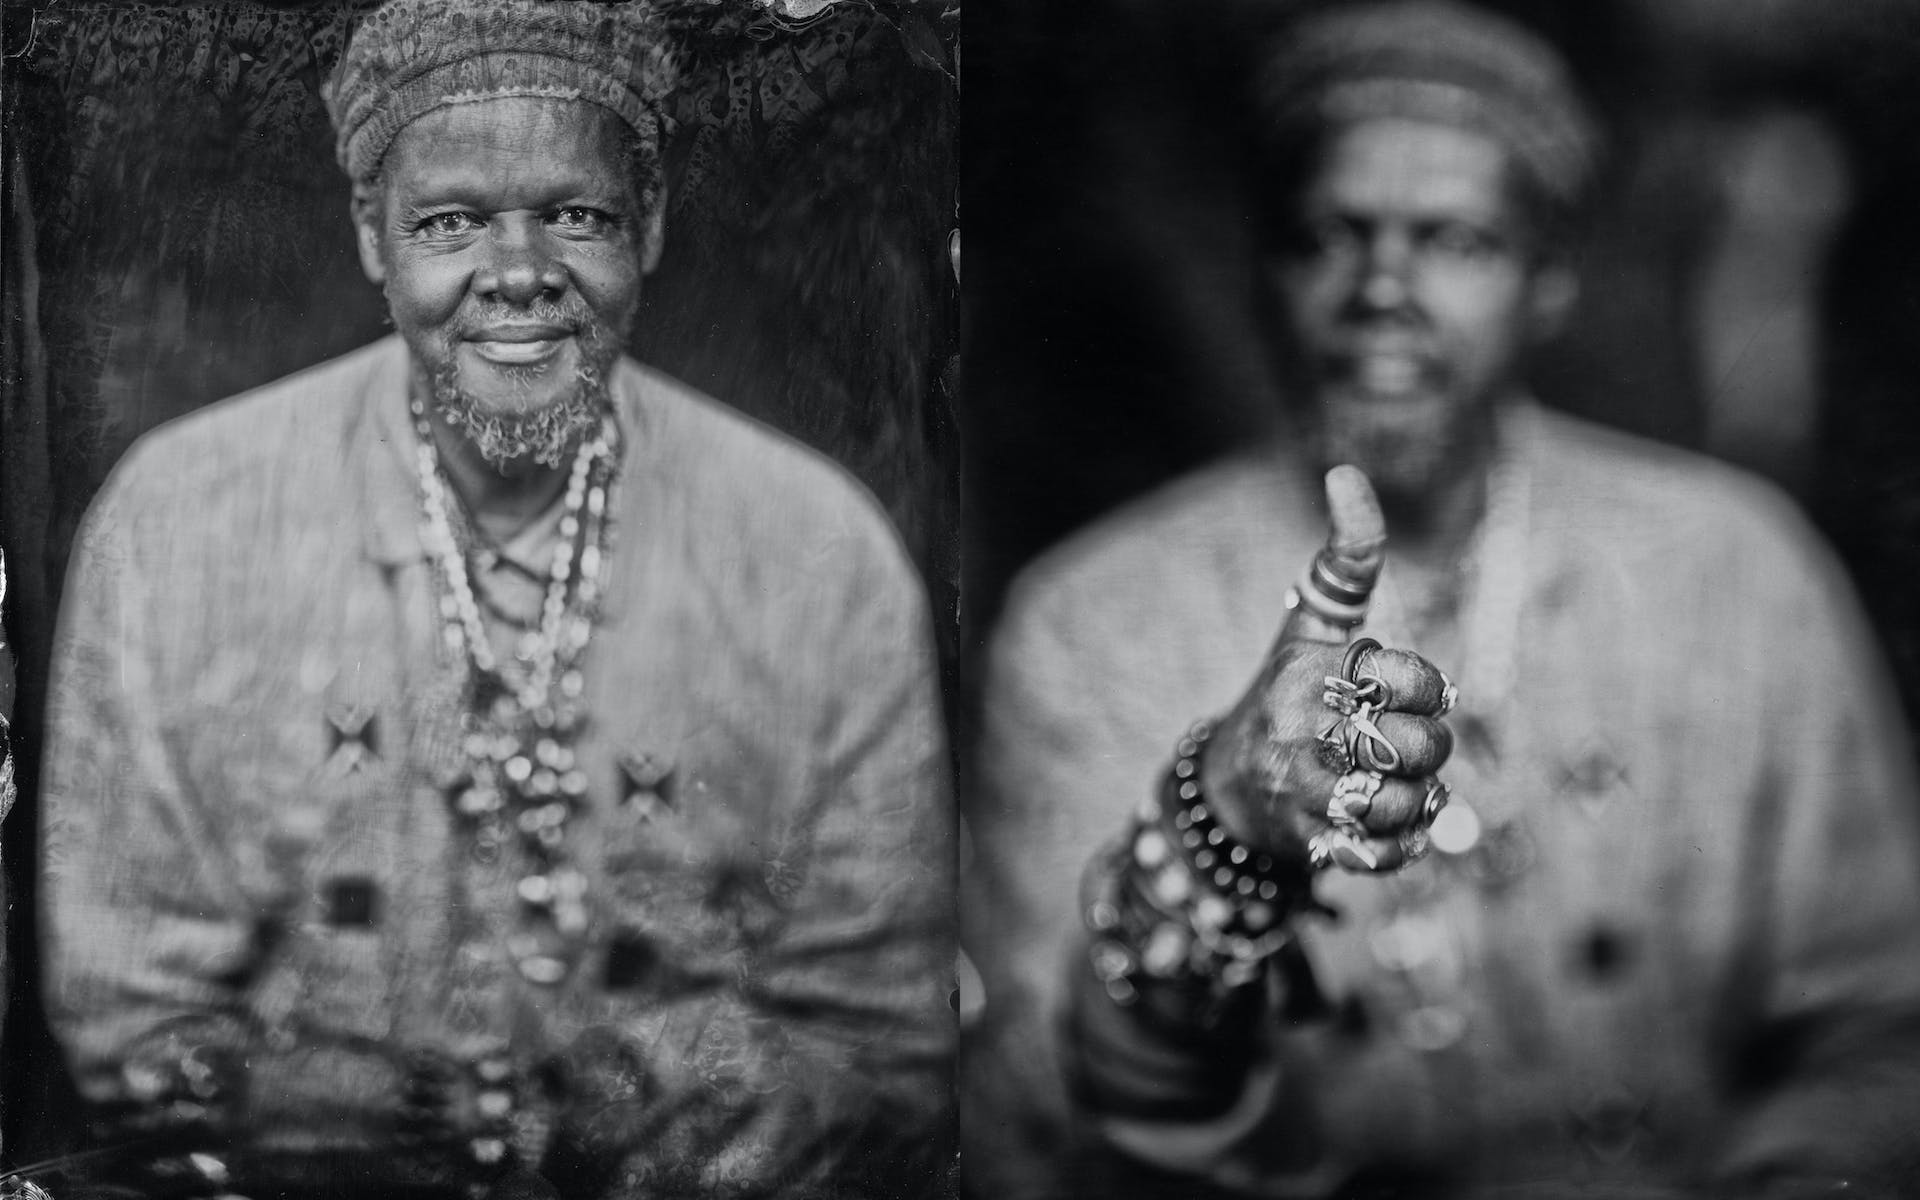 Two side by side black and white portraits of Lonnie Holley